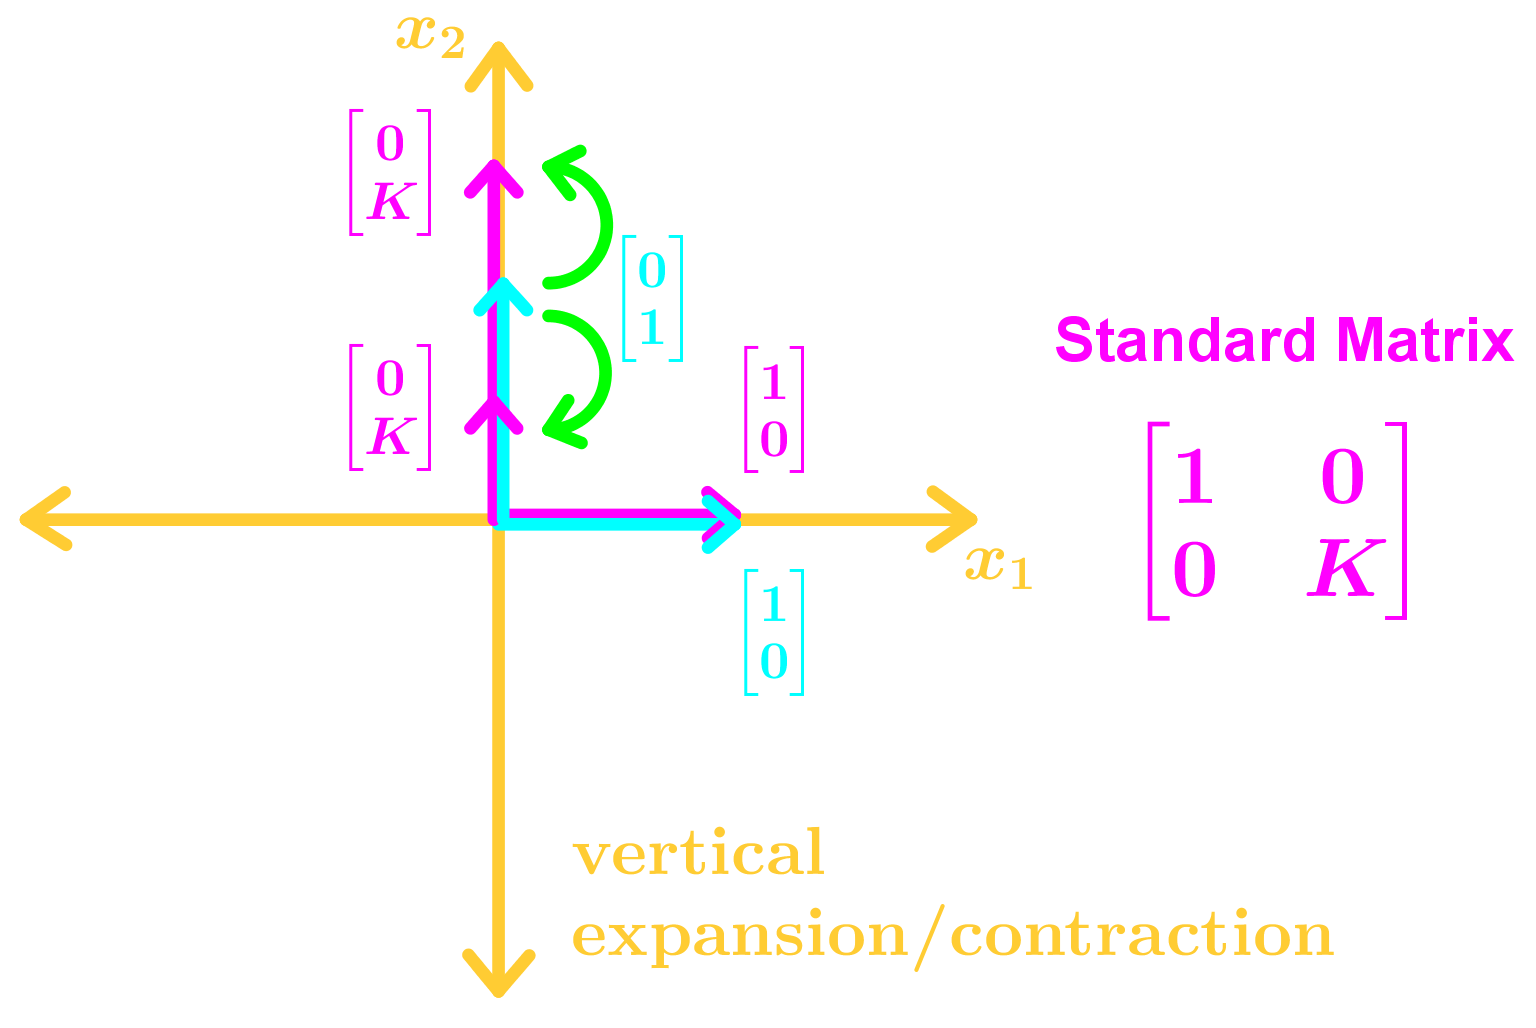 vertical expansion/contraction